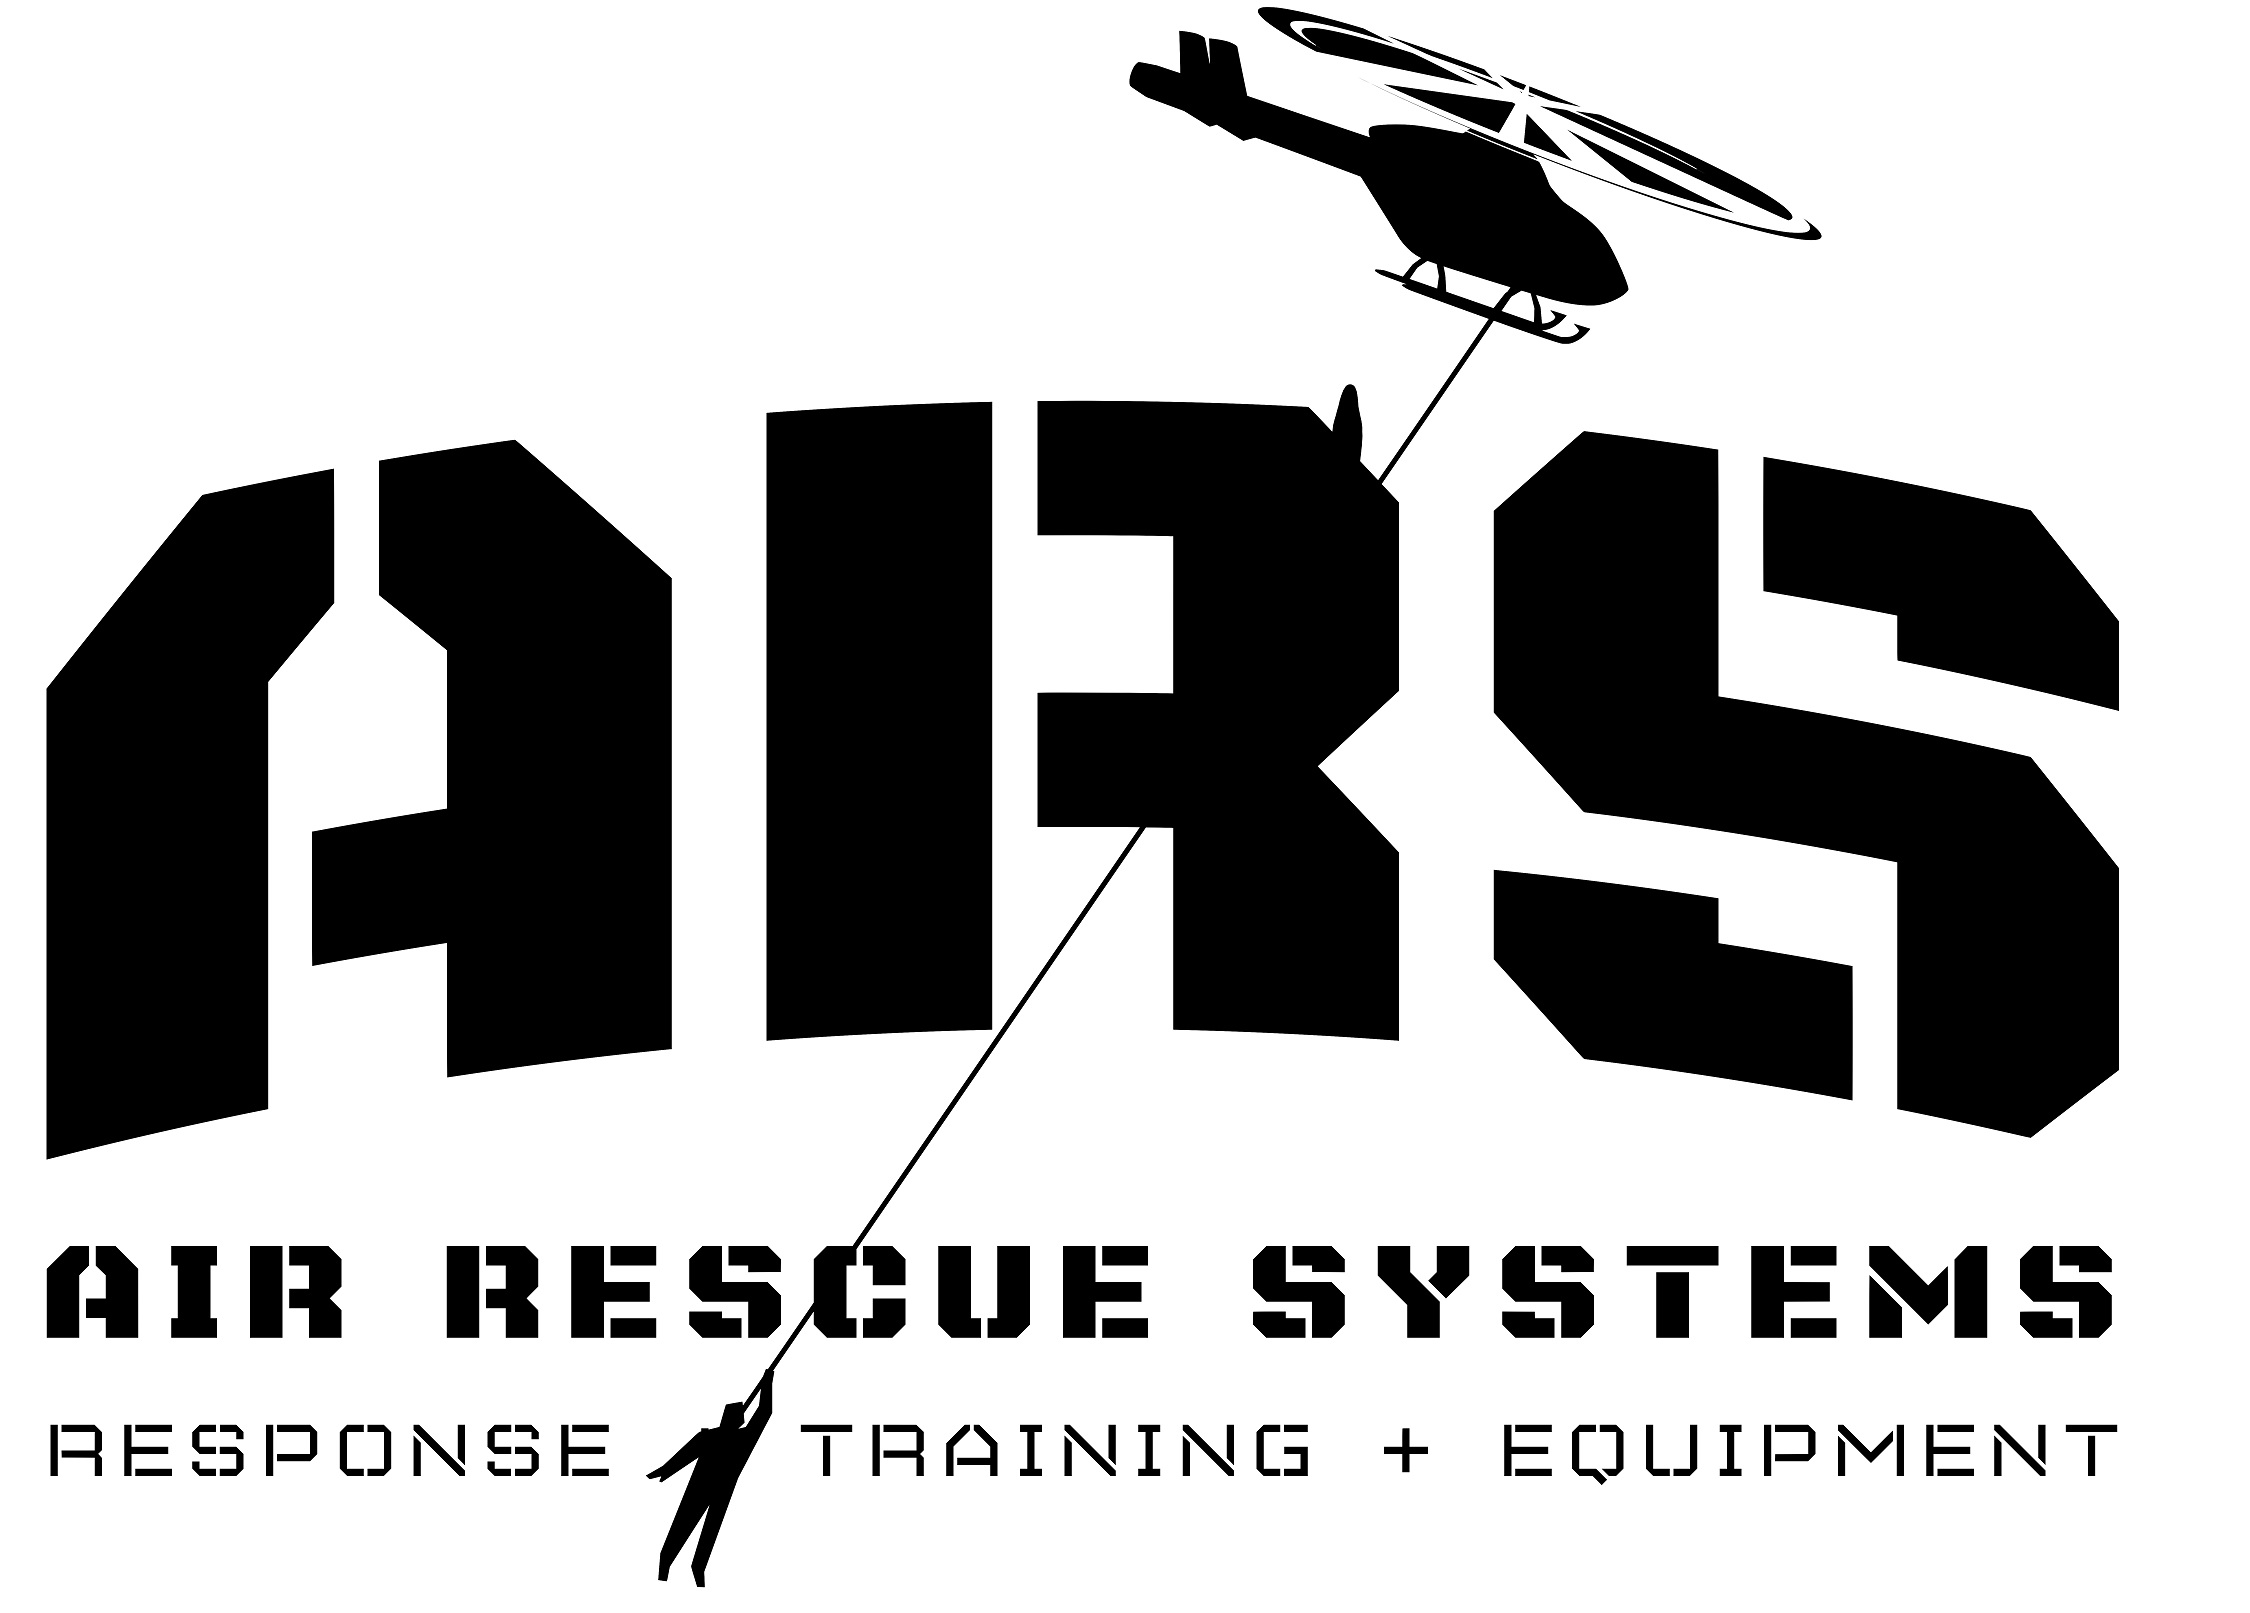 Air Rescue Systems xs